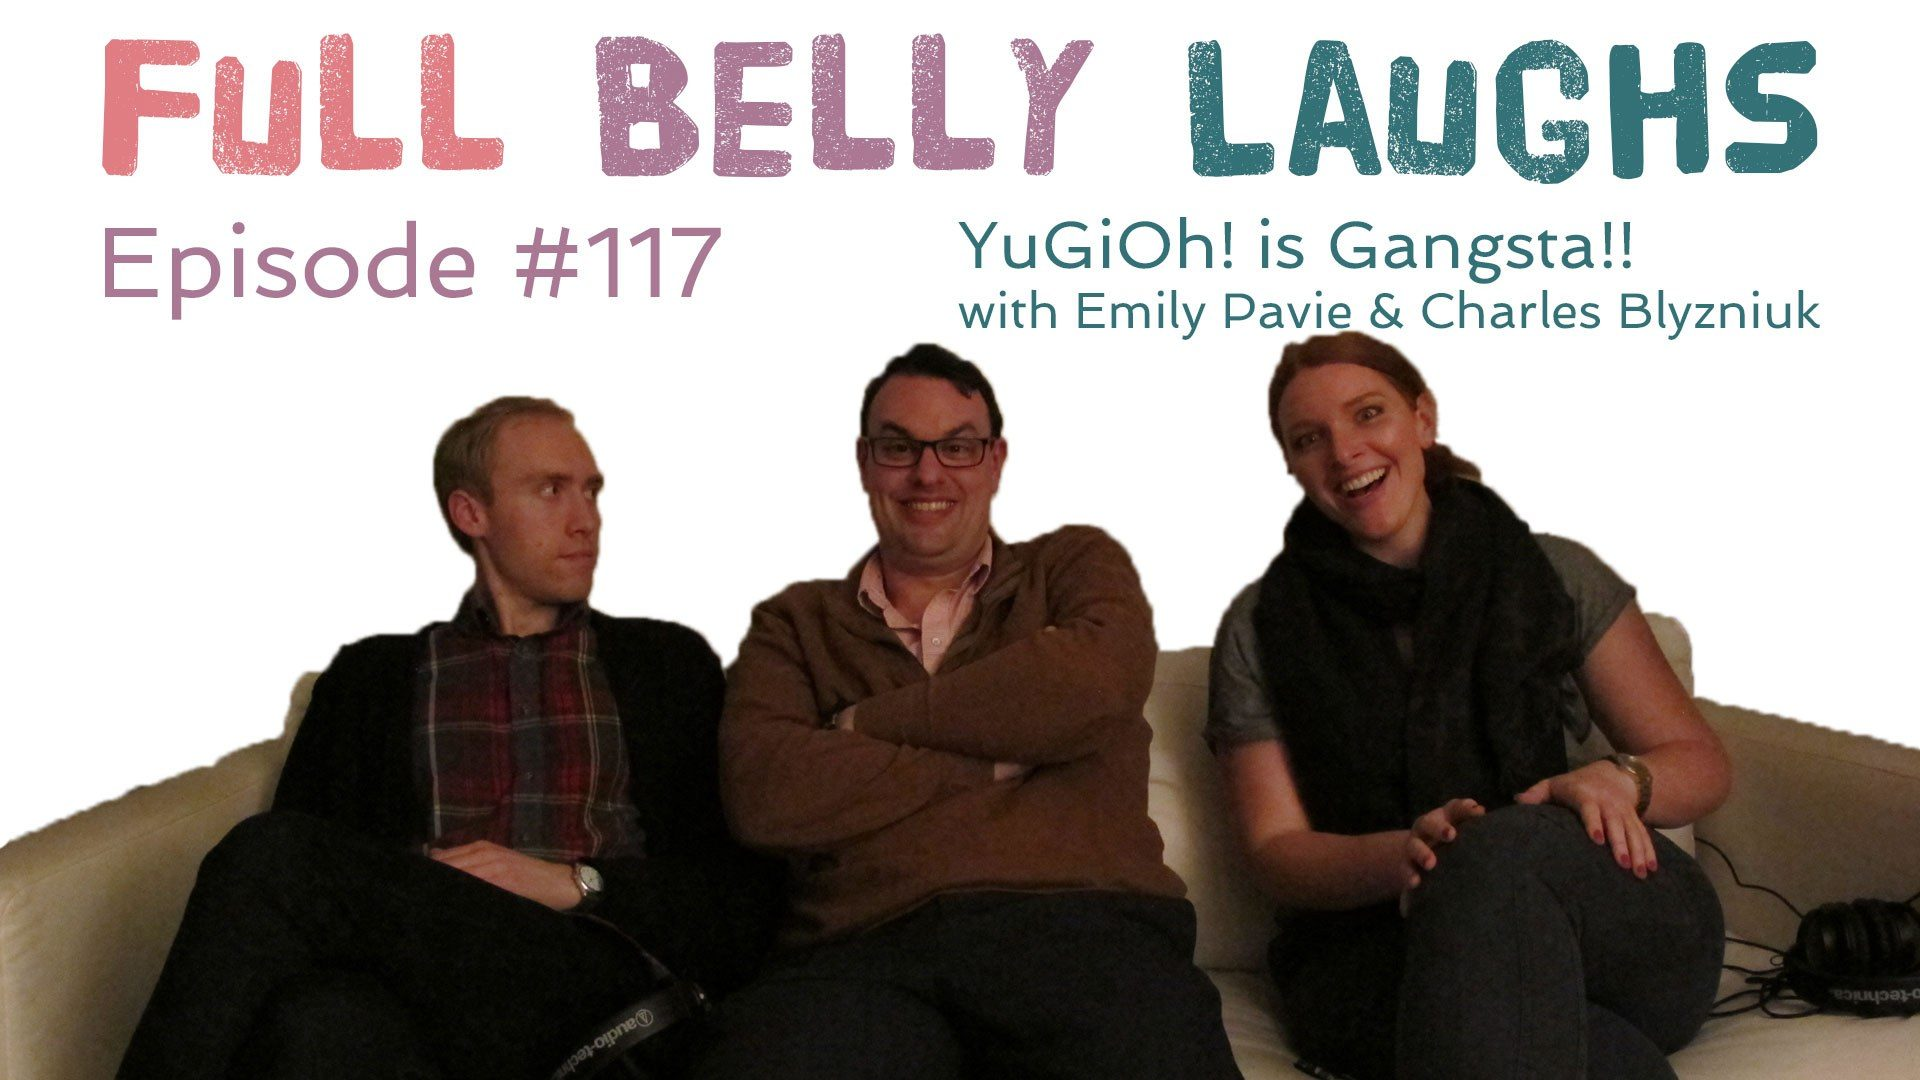 full belly laughs podcast episode 117 yugioh influencers audio artwork